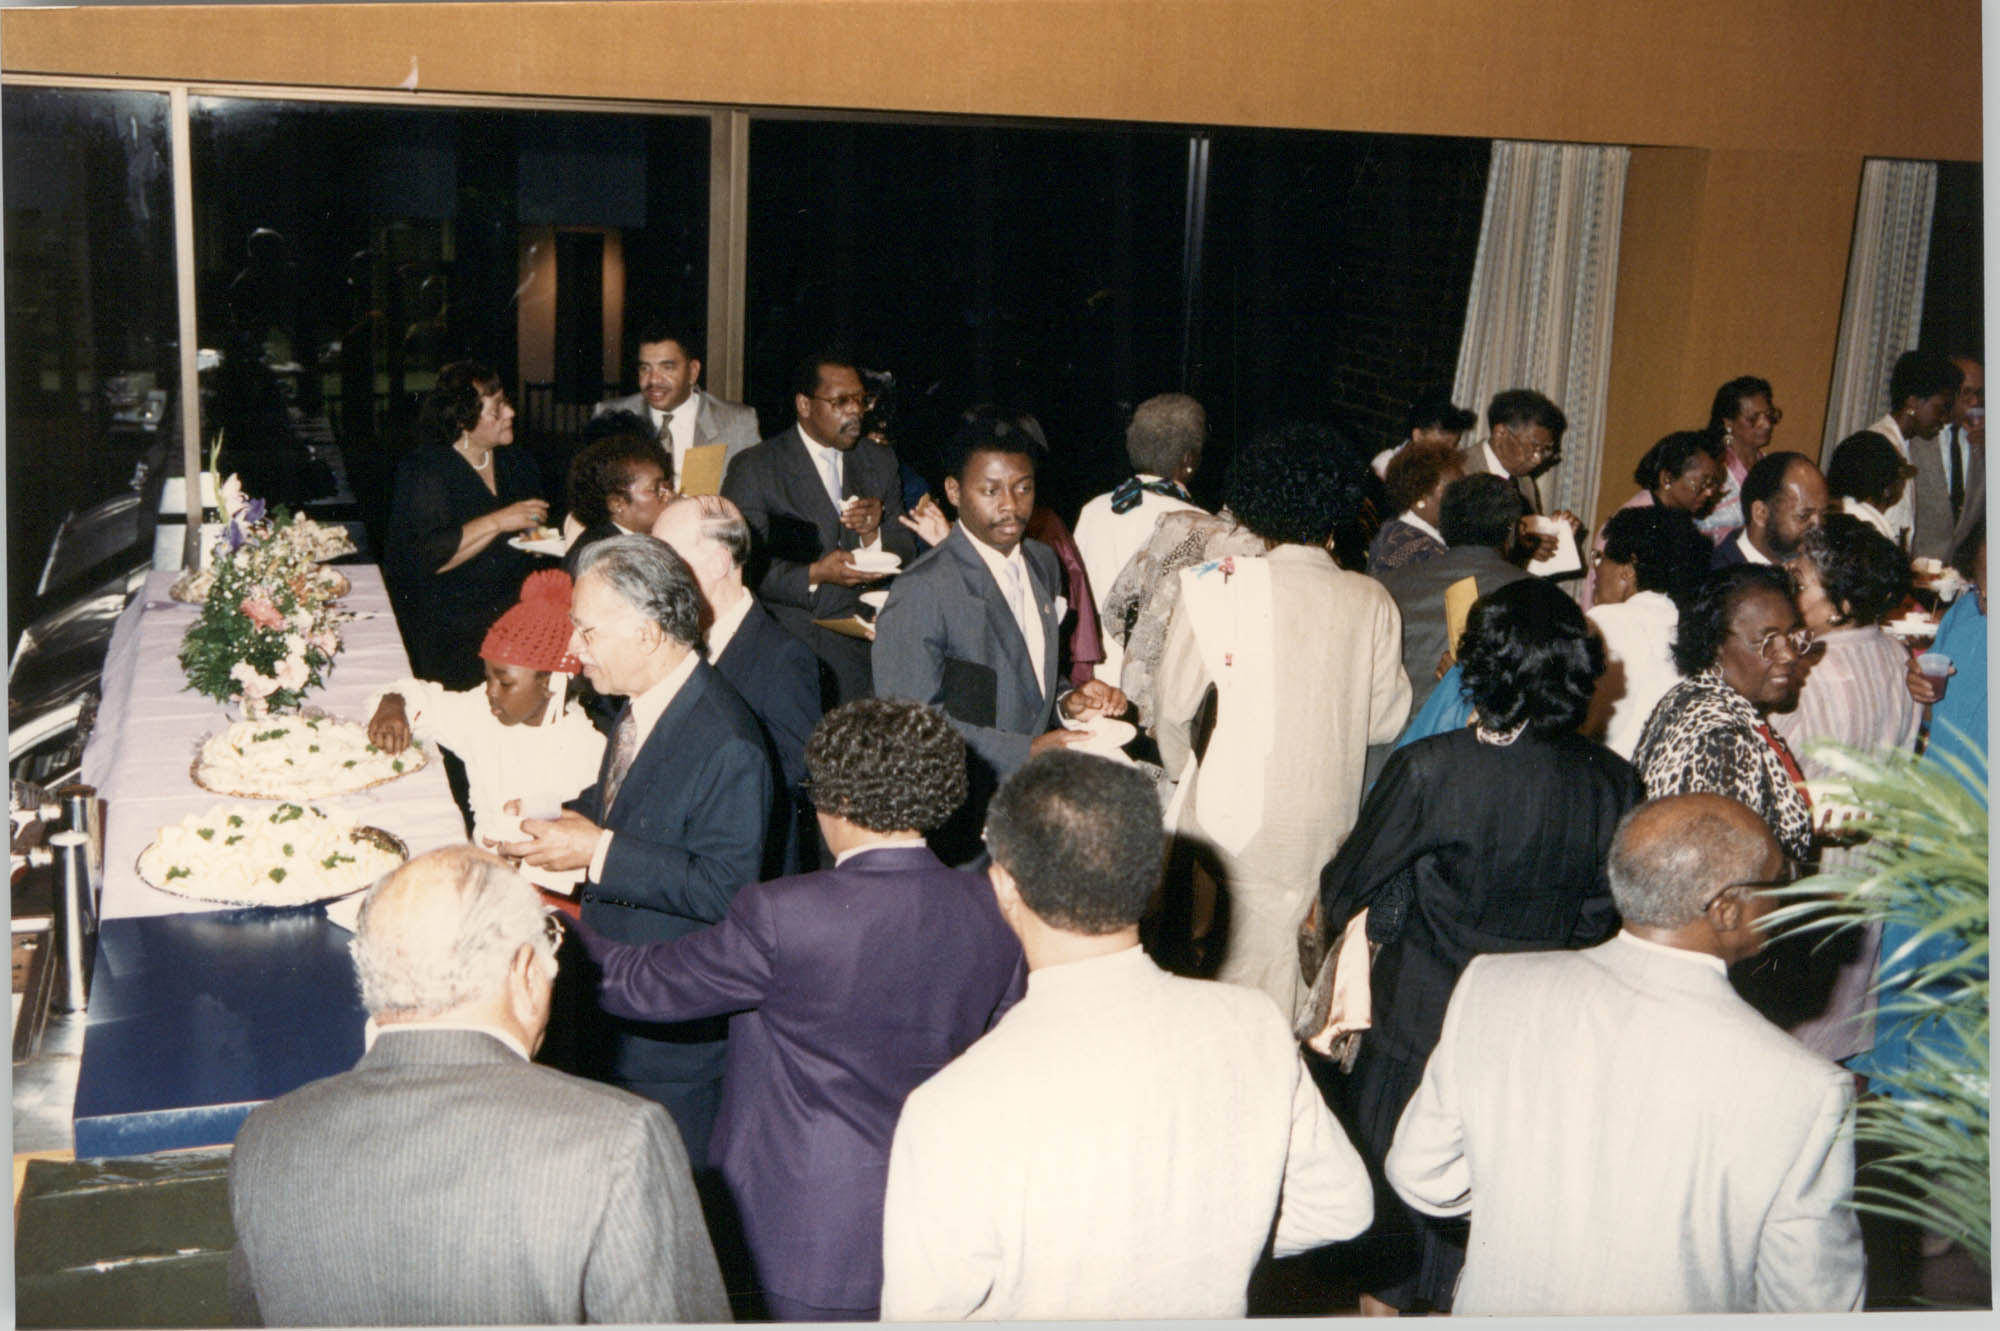 Photograph of a Group of People at a College of Charleston Event